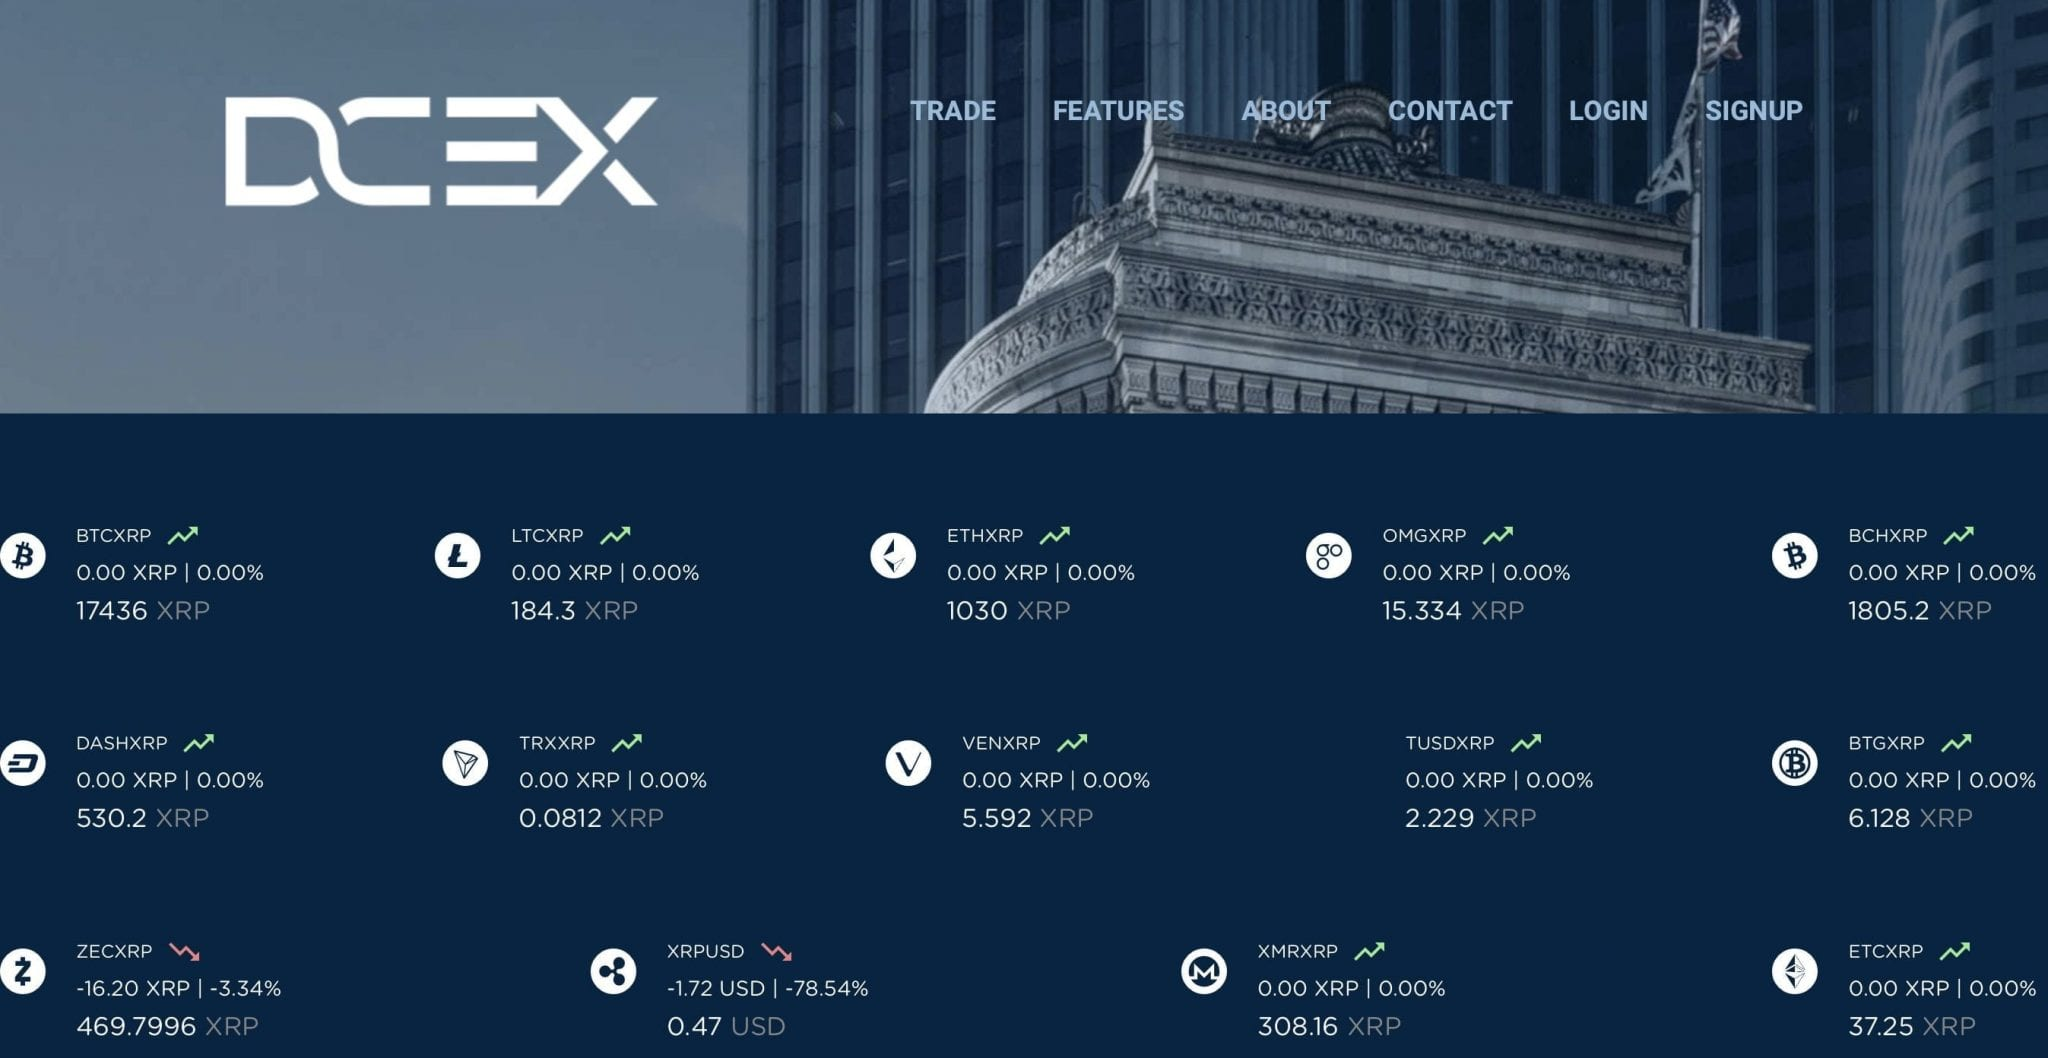 dcex ripple xrp - The First Crypto Exchange Platform That Uses XRP Exclusively As The Base Currency Is Open For Client Registration